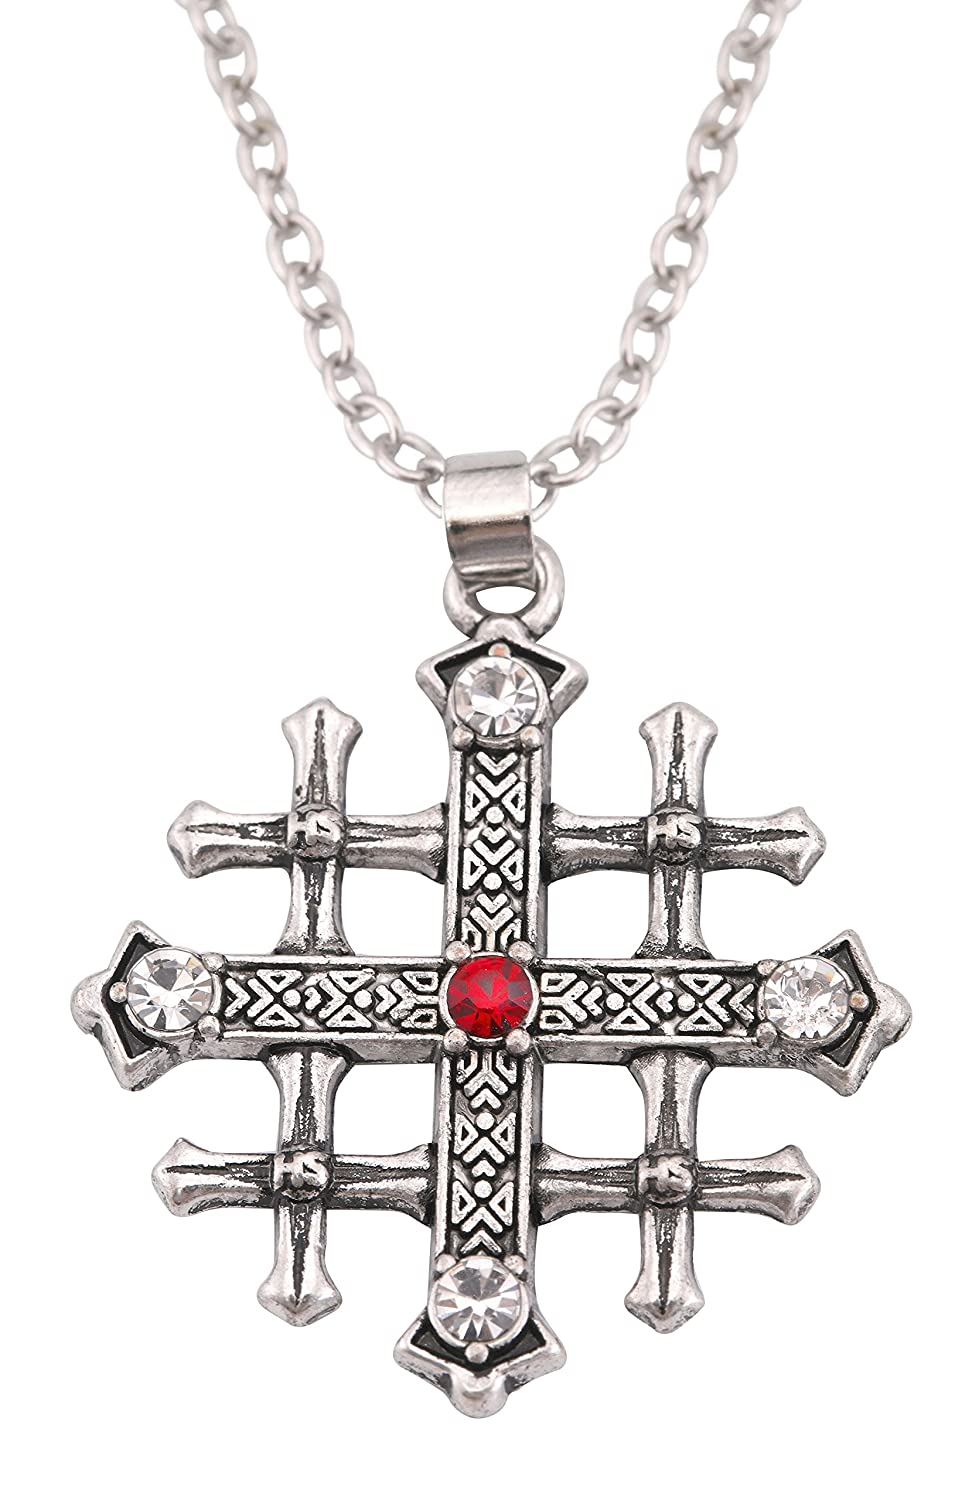 Lemegeton Jerusalem Cross Medieval Cross Pendant Necklace Red Crystal Christian Retro Jewelry BiChuang